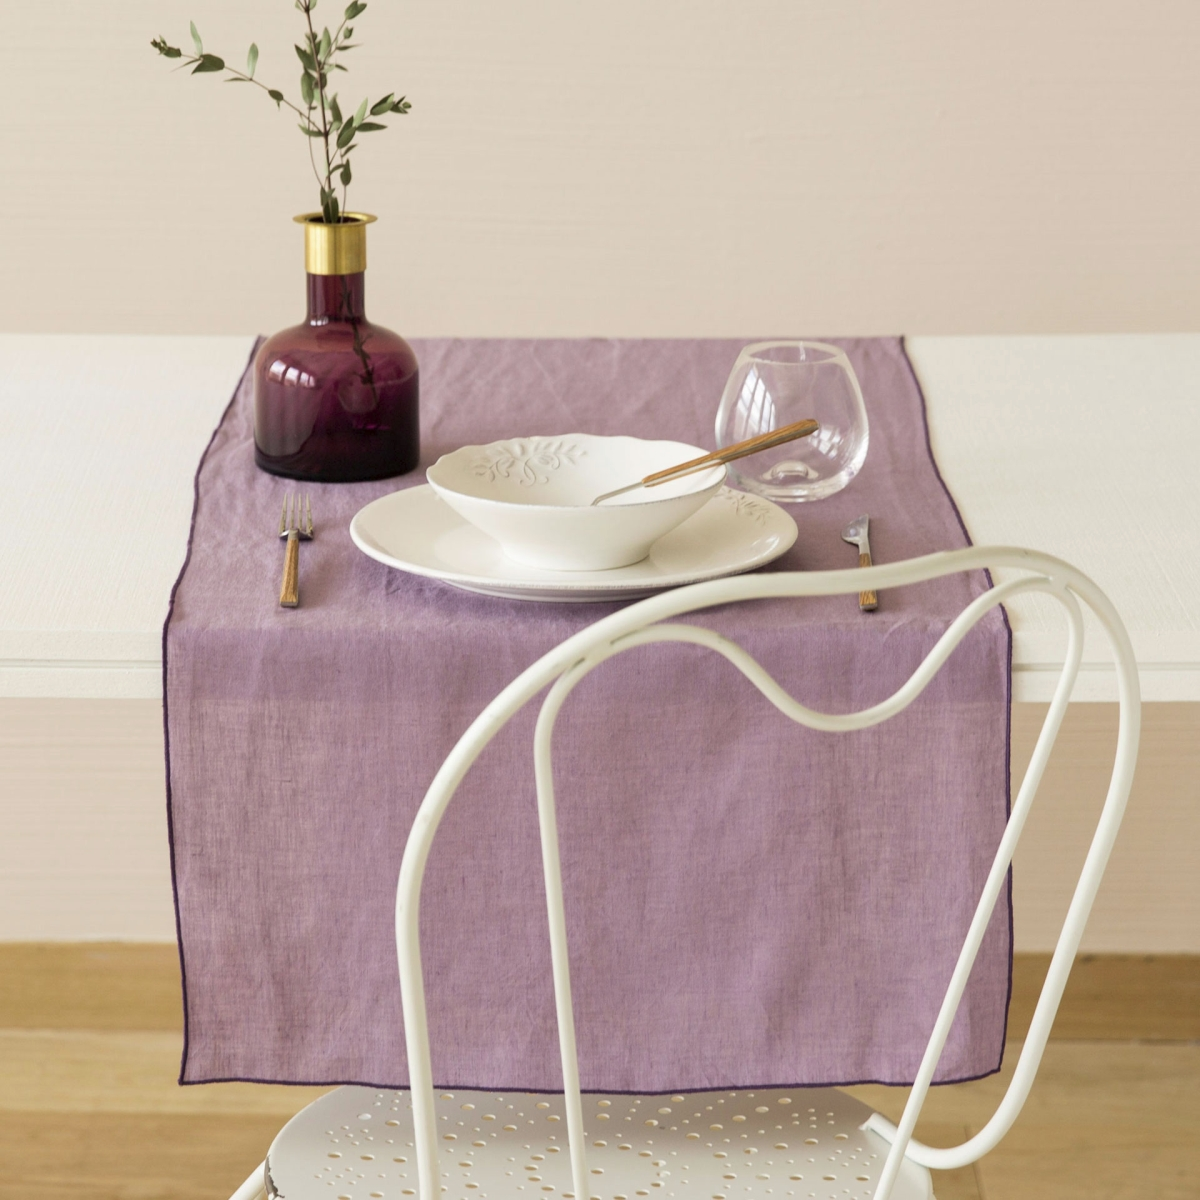 The hunt for the perfect table runner for Table zara home